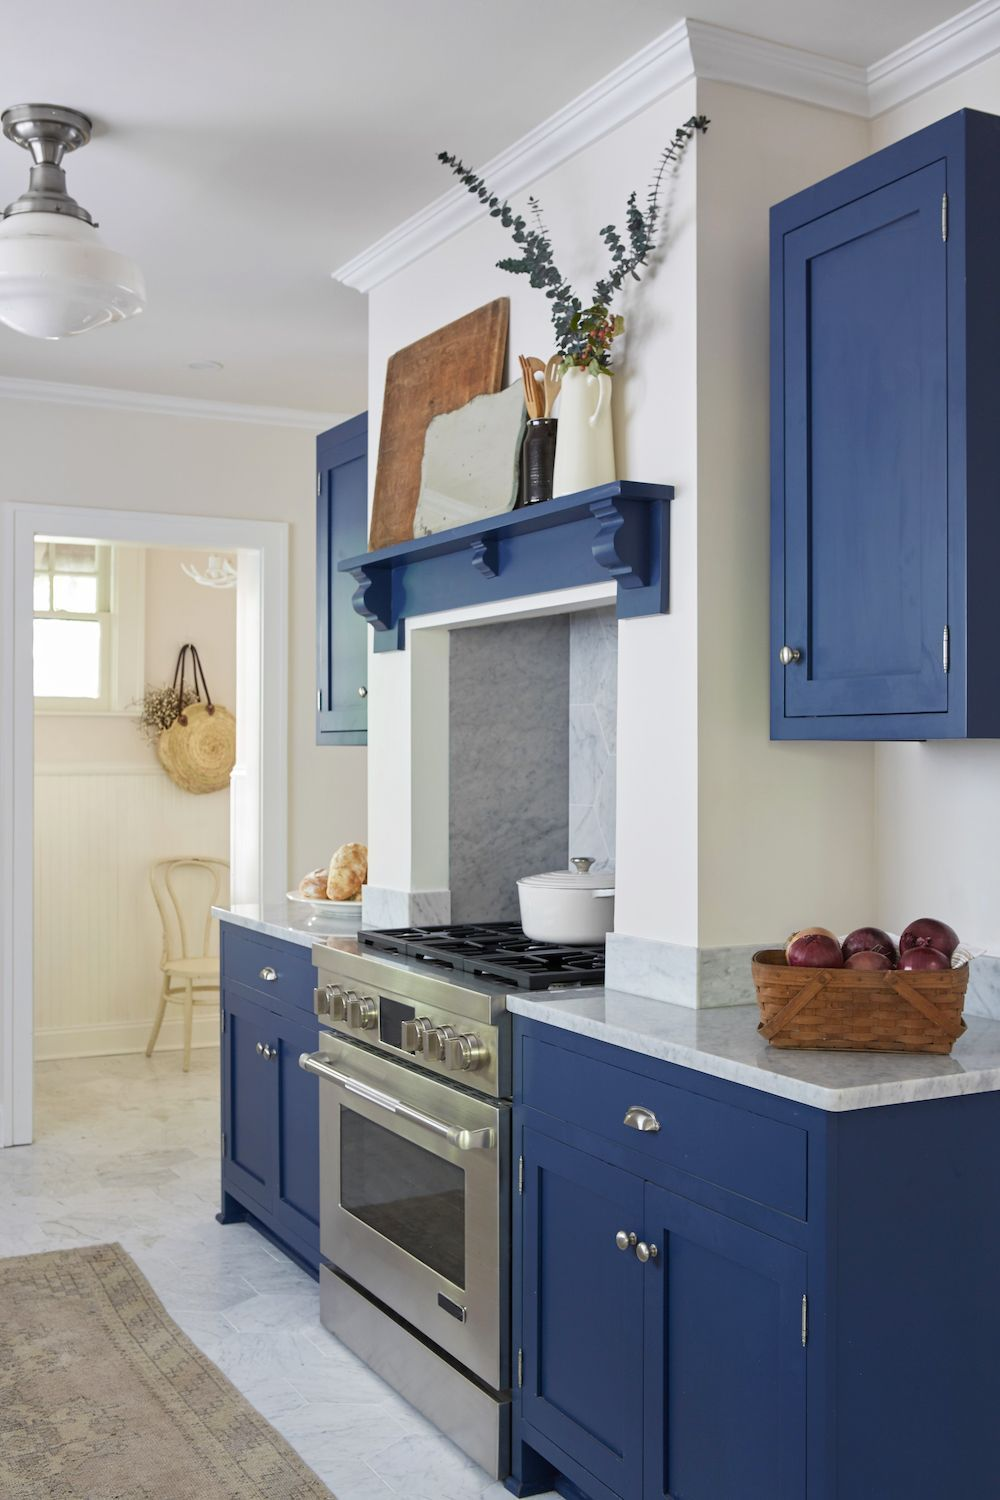 21 Innovative Cool Kitchen Colors To Make Your Kitchen Look